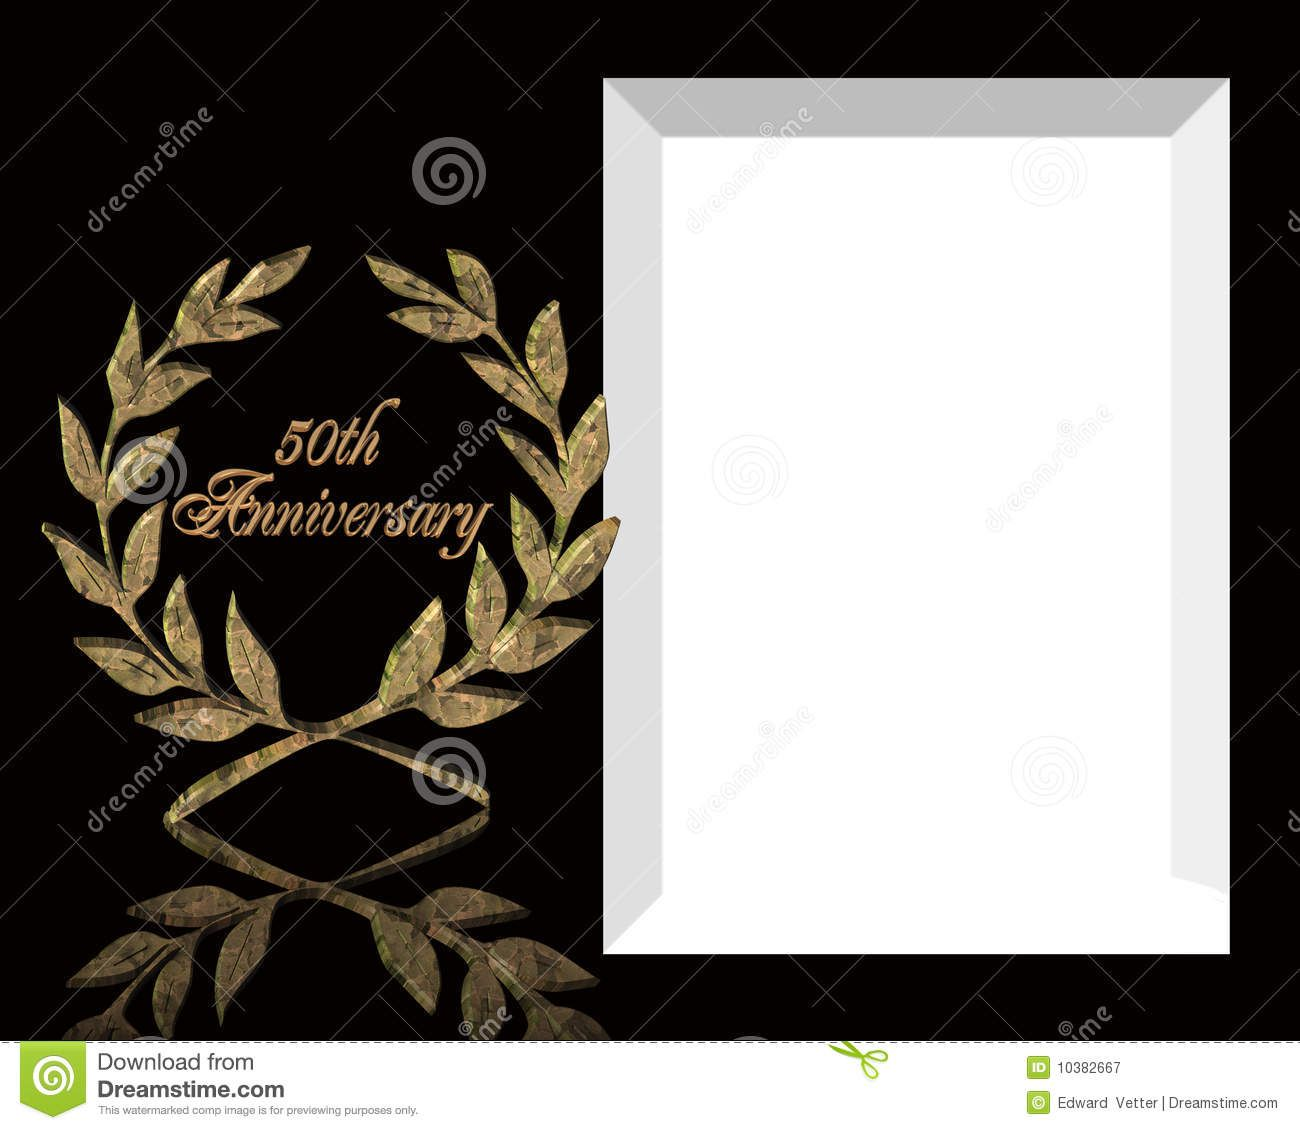 006 Fantastic 50th Anniversary Invitation Template Free Highest Quality  For Word Golden Wedding DownloadFull